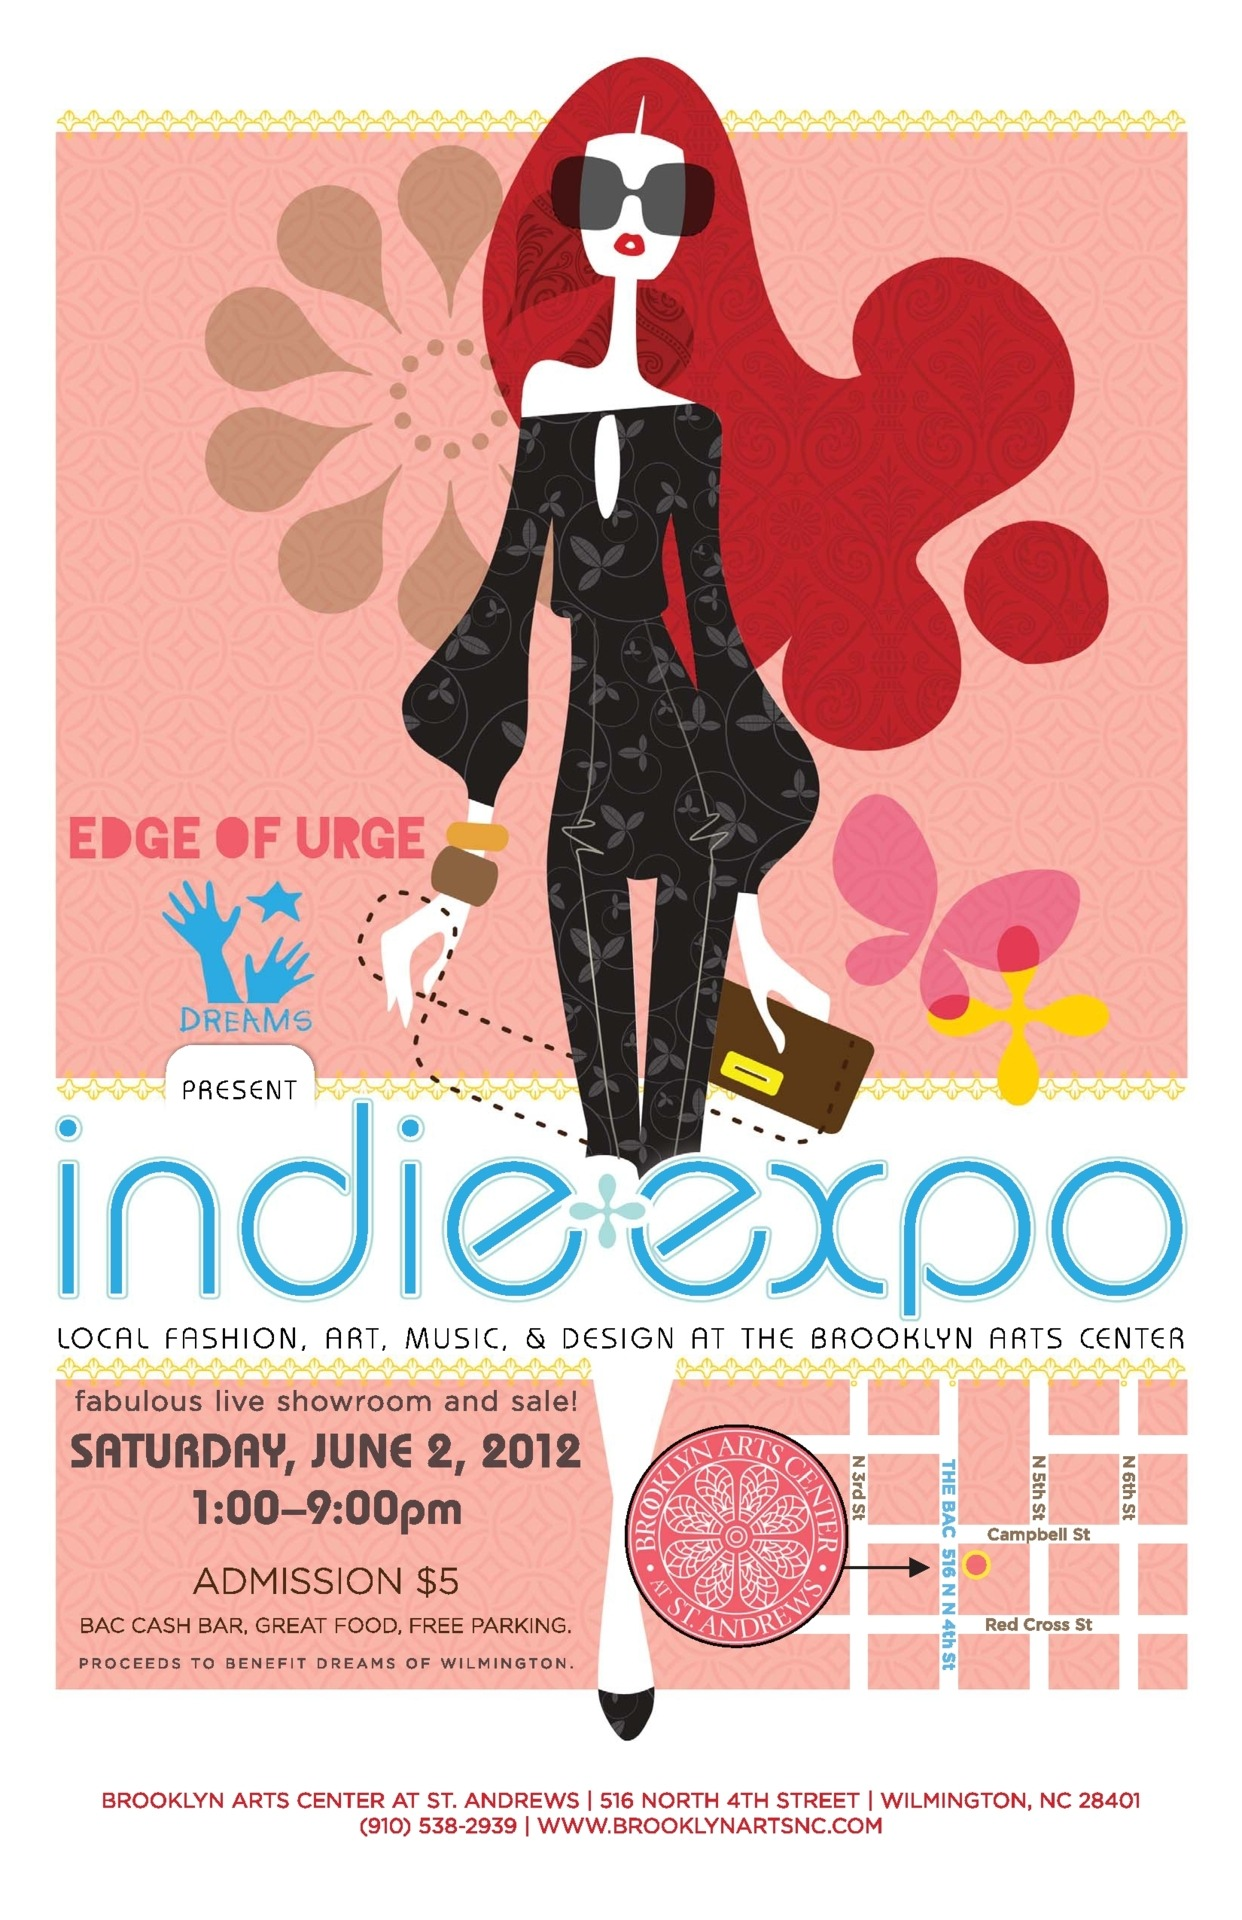 ANNOUNCING: INDIE EXPO - Local Fashion, Art, Design, and Music Saturday, June 2, from 1-9pm at The Brooklyn Arts Center Wanna be a vendor? email heather@brooklynartsnc.com for info Check out Indie Expo on Facebook!! Tweet  // ]]]]]]]]]]> // ]]]]]]]]> // ]]]]]]> // ]]]]>]]>